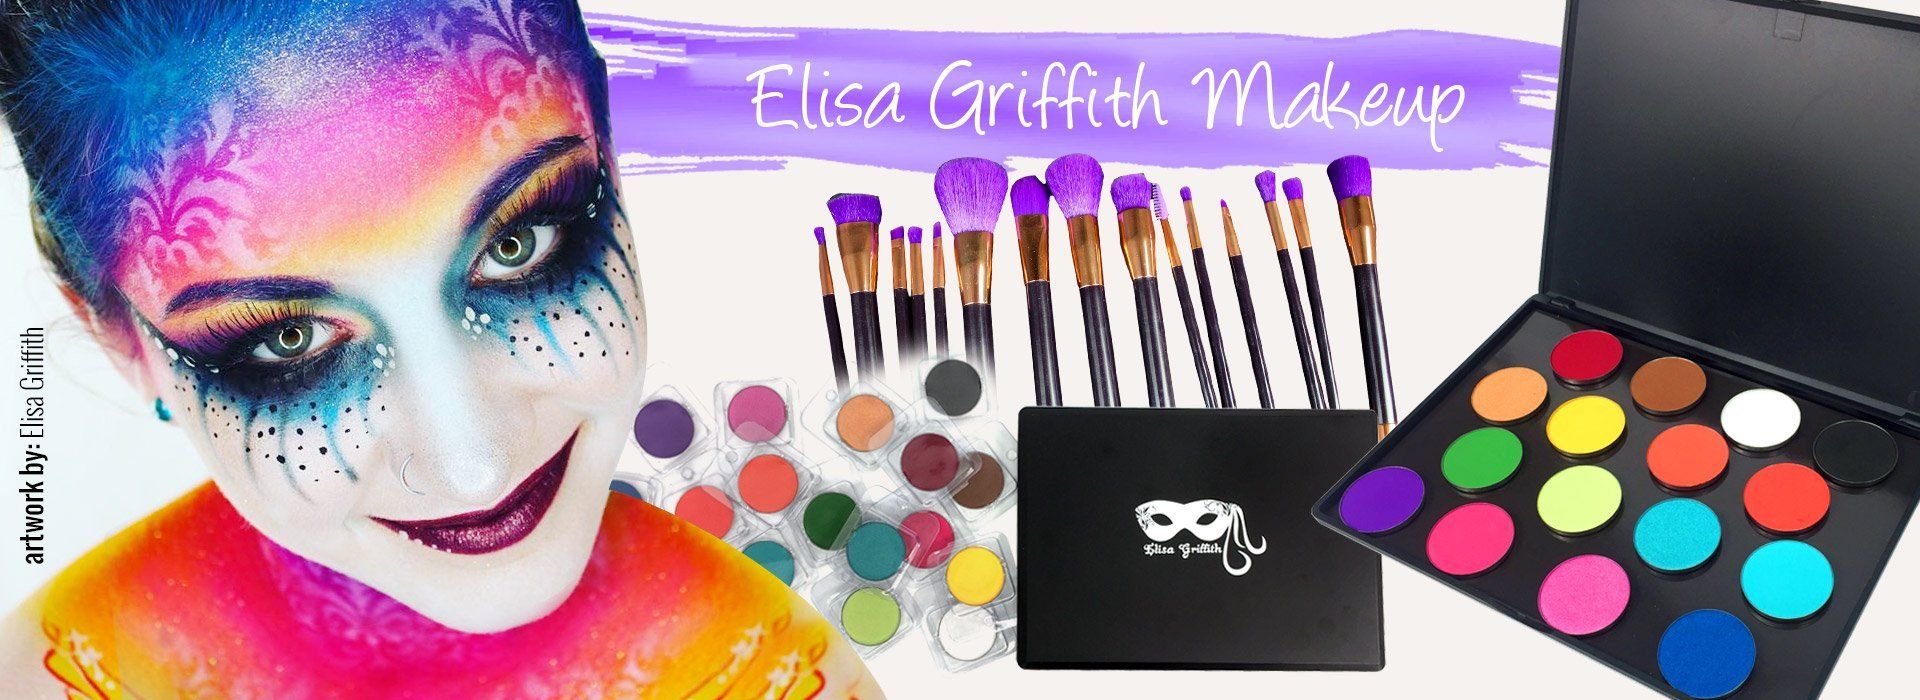 Elisa Griffith Makeup | Silly Farm Supplies